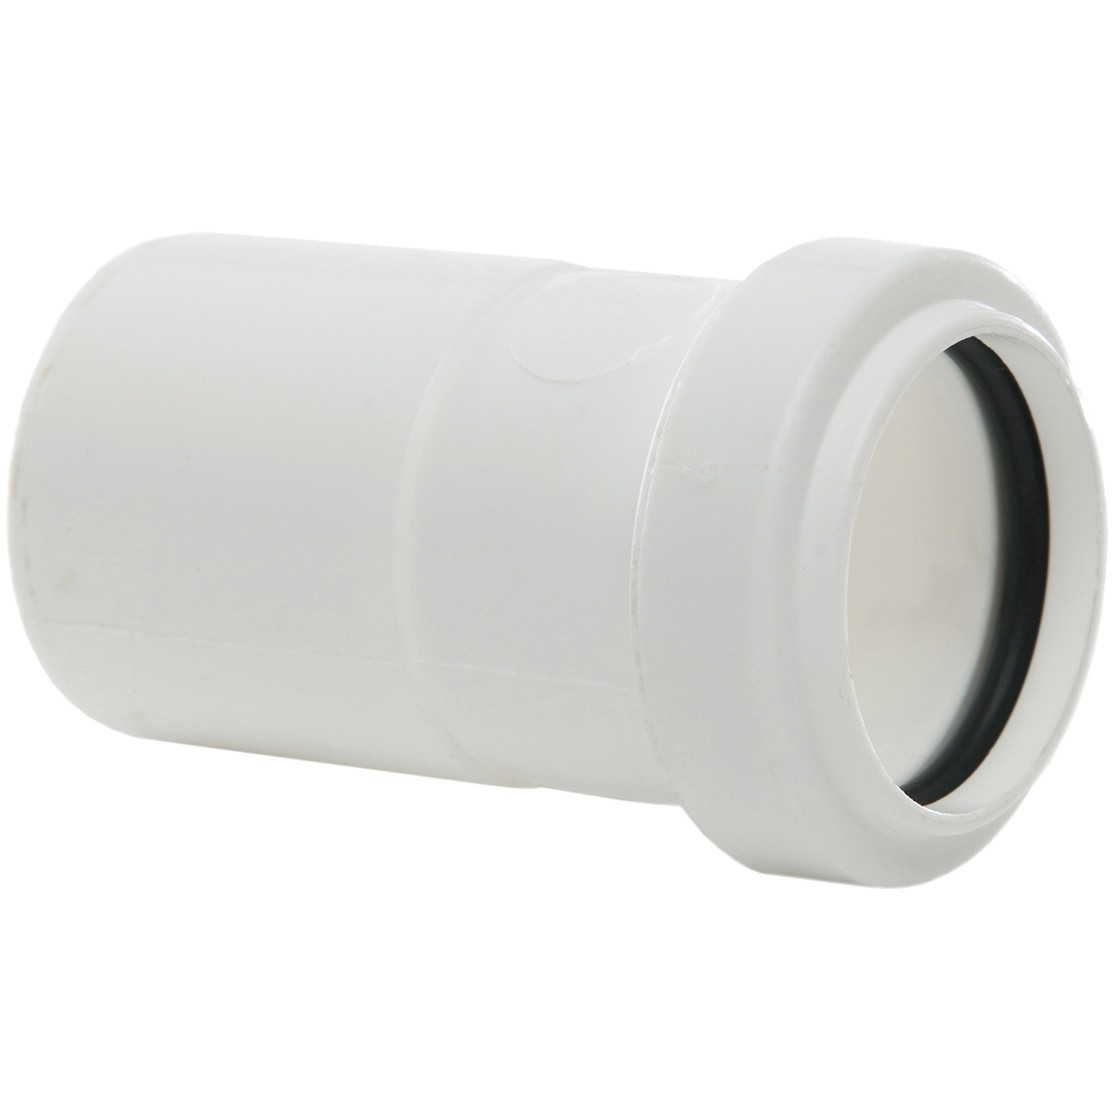 Polypipe 40mm to 32mm Push Fit Waste Reducer - White